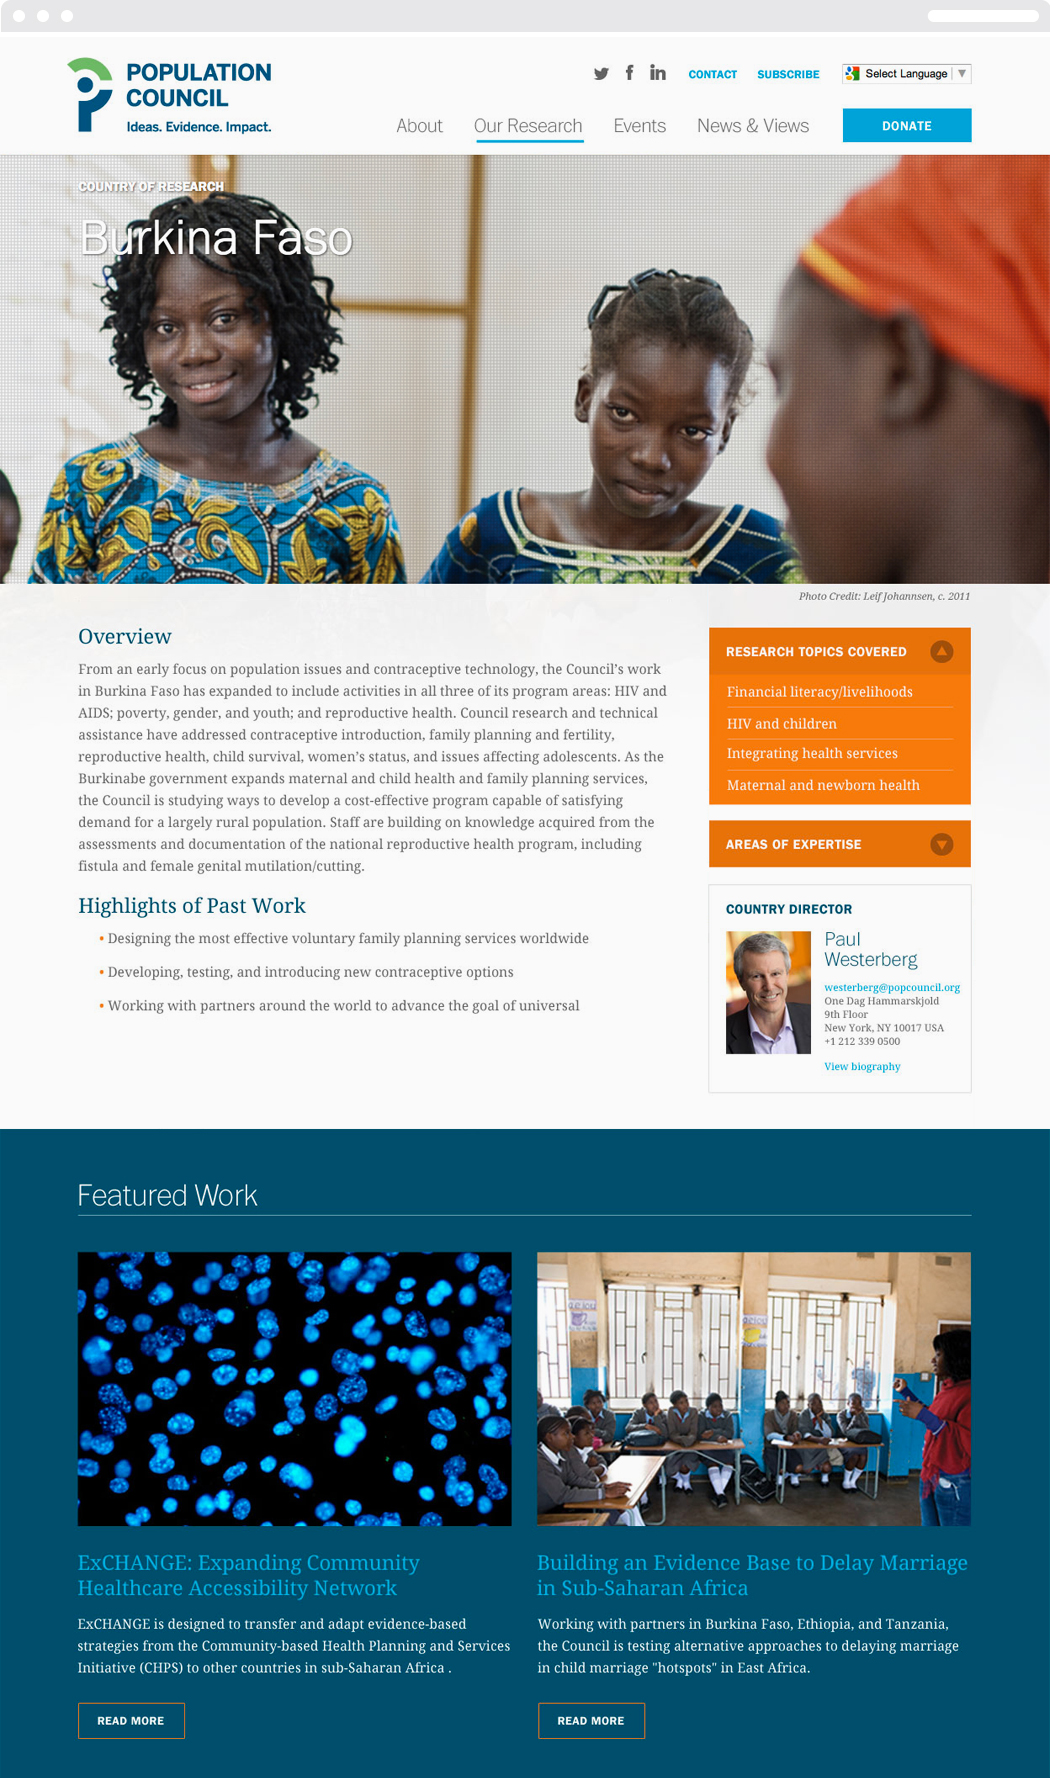 Population Council Burkina Faso country research web page, with an image three young, dark-skinned girls in colorful dress.